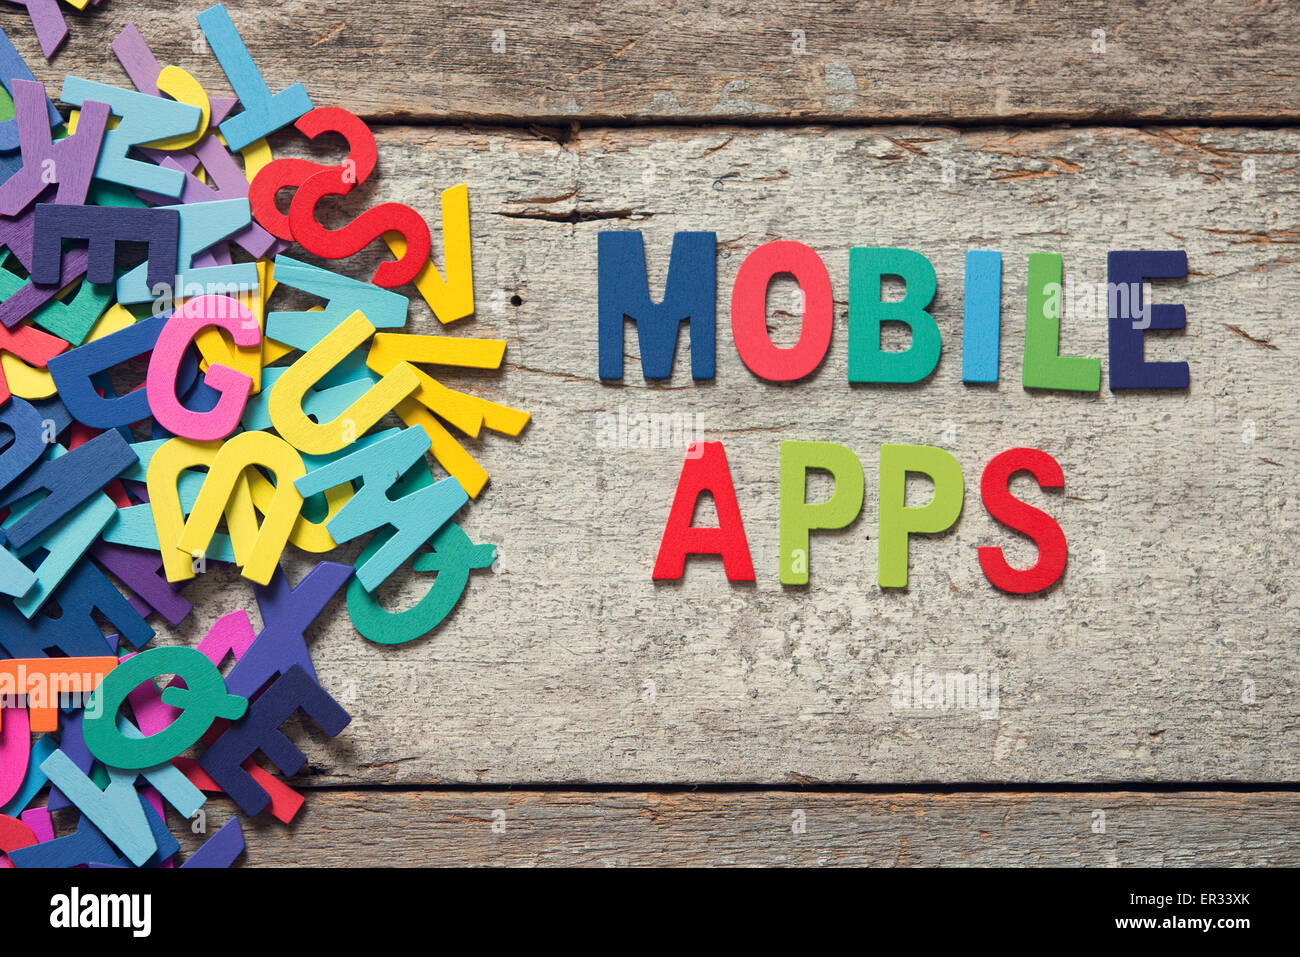 The colorful words 'MOBILE APPS' made with wooden letters next to a pile of other letters over old wooden - Stock Image